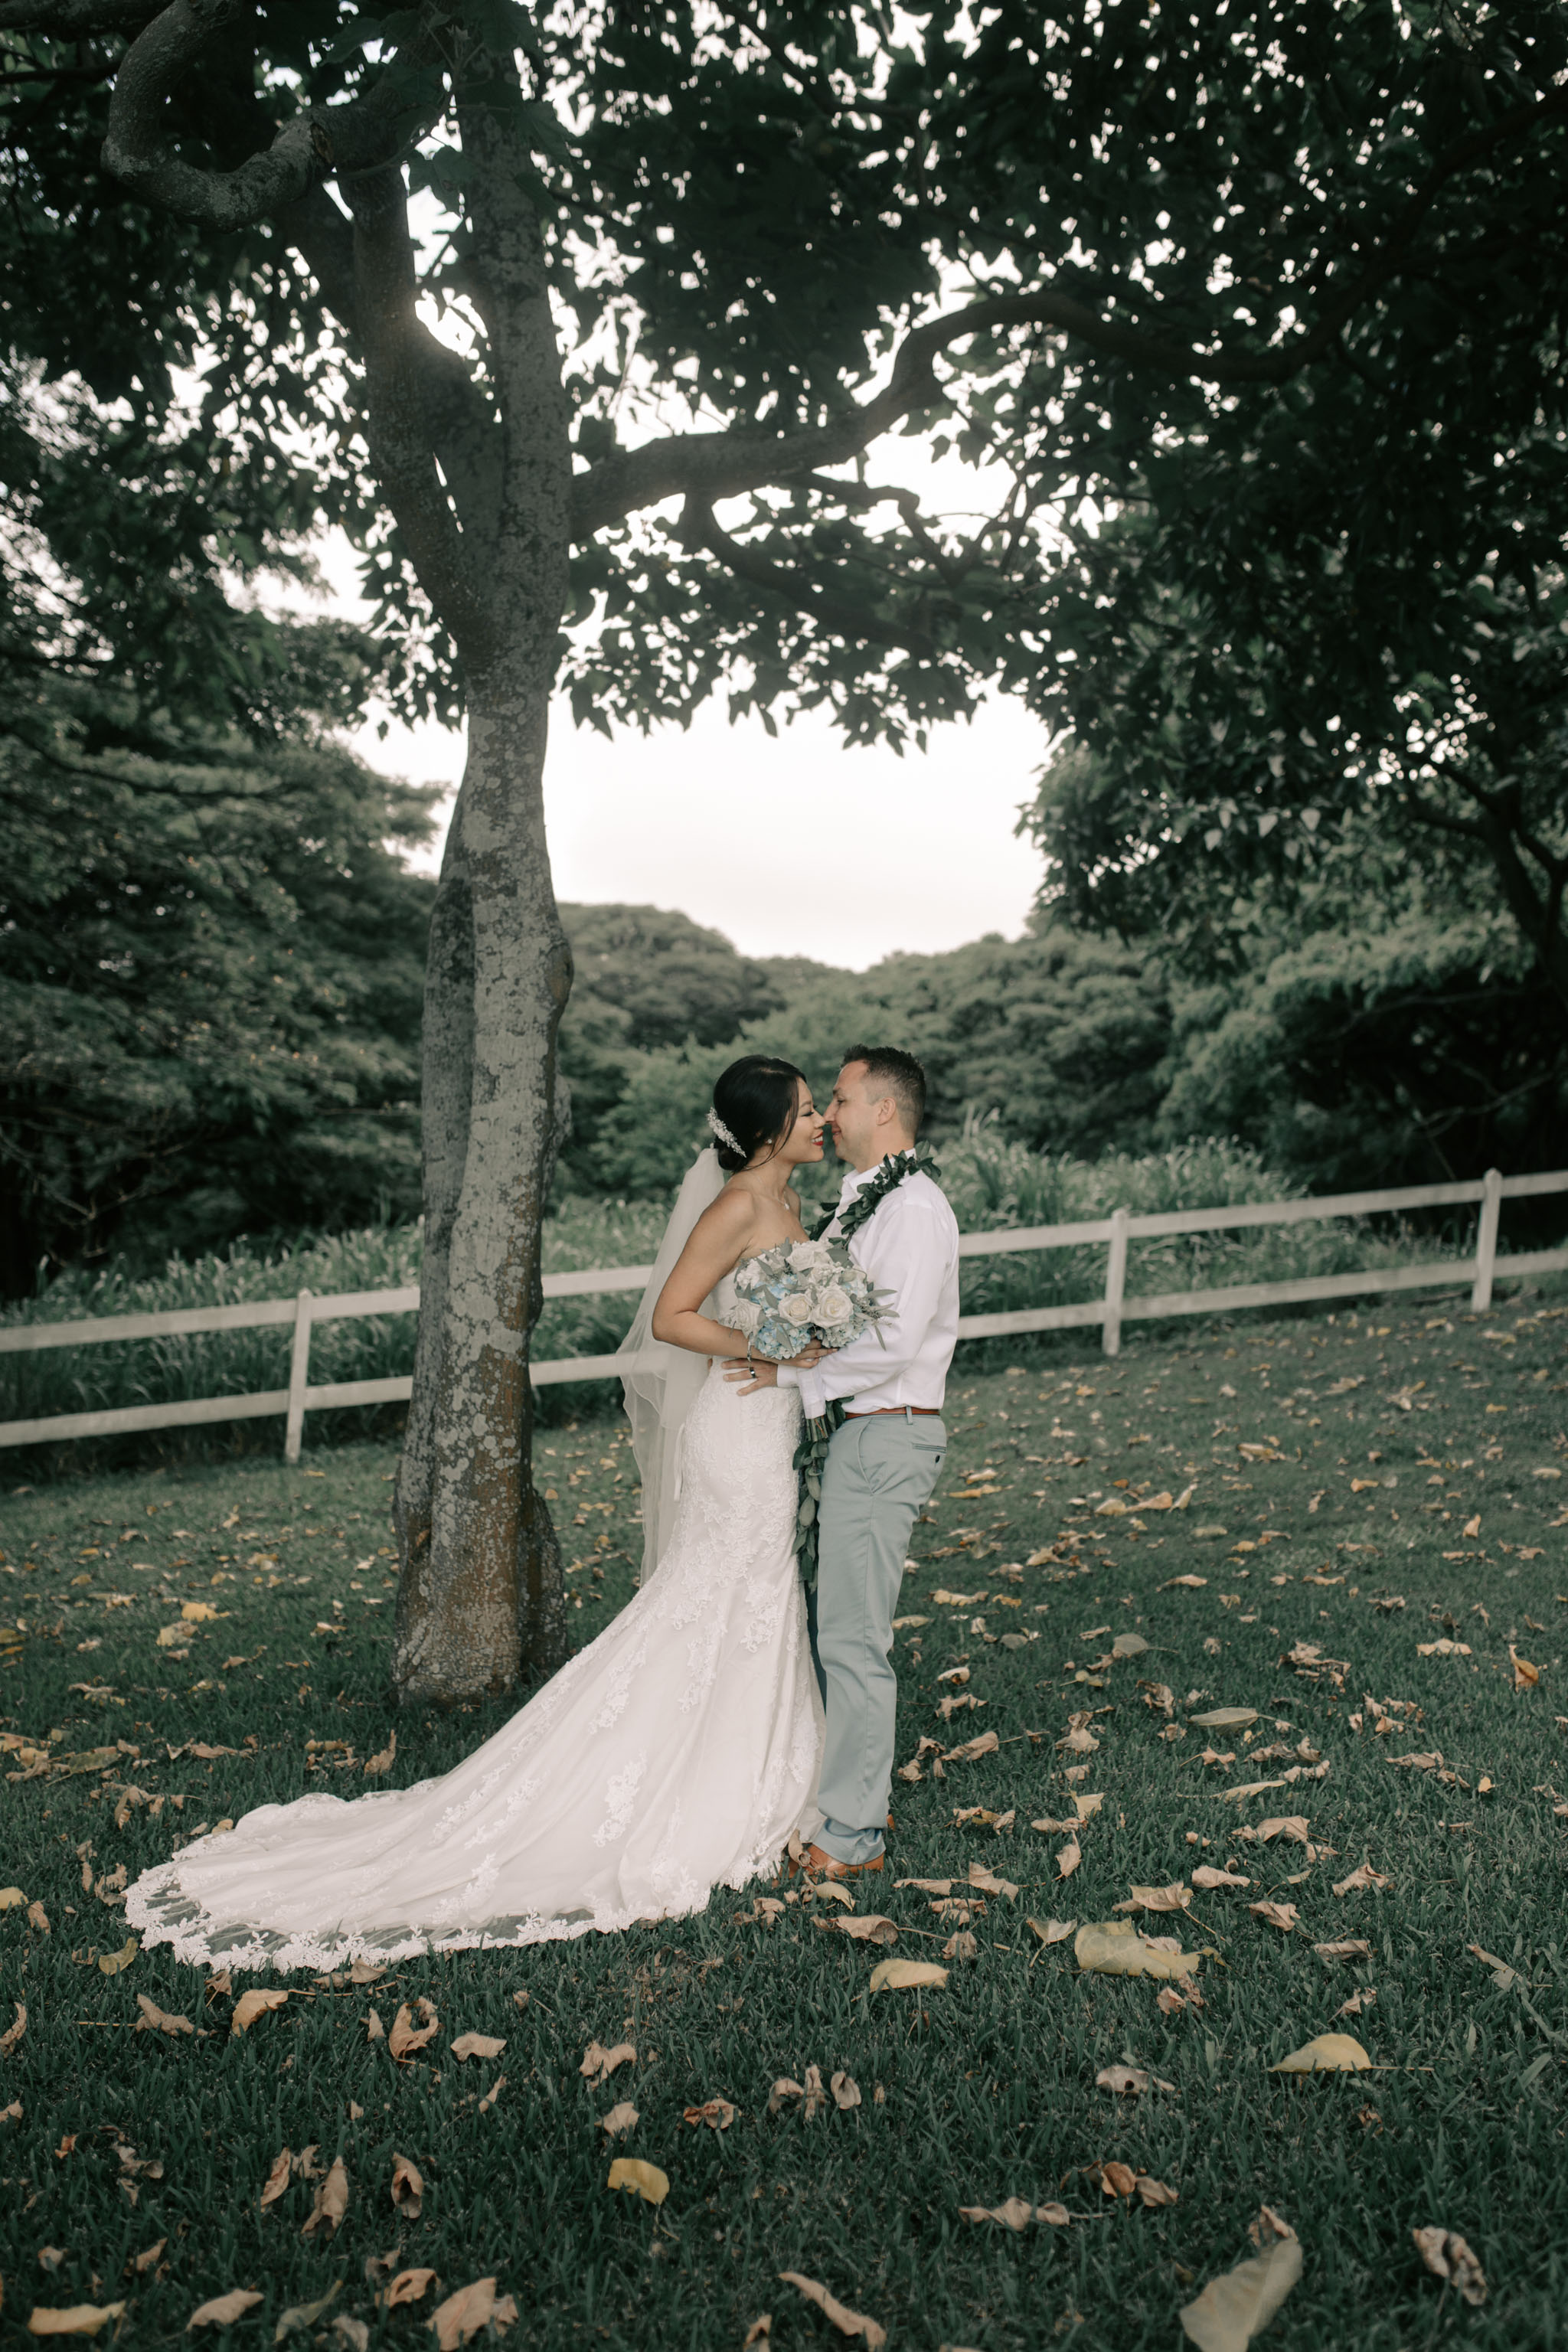 Kualoa Ranch Paliku Gardens Wedding. Photography by Hawaii fine art wedding photographer Desiree Leilani